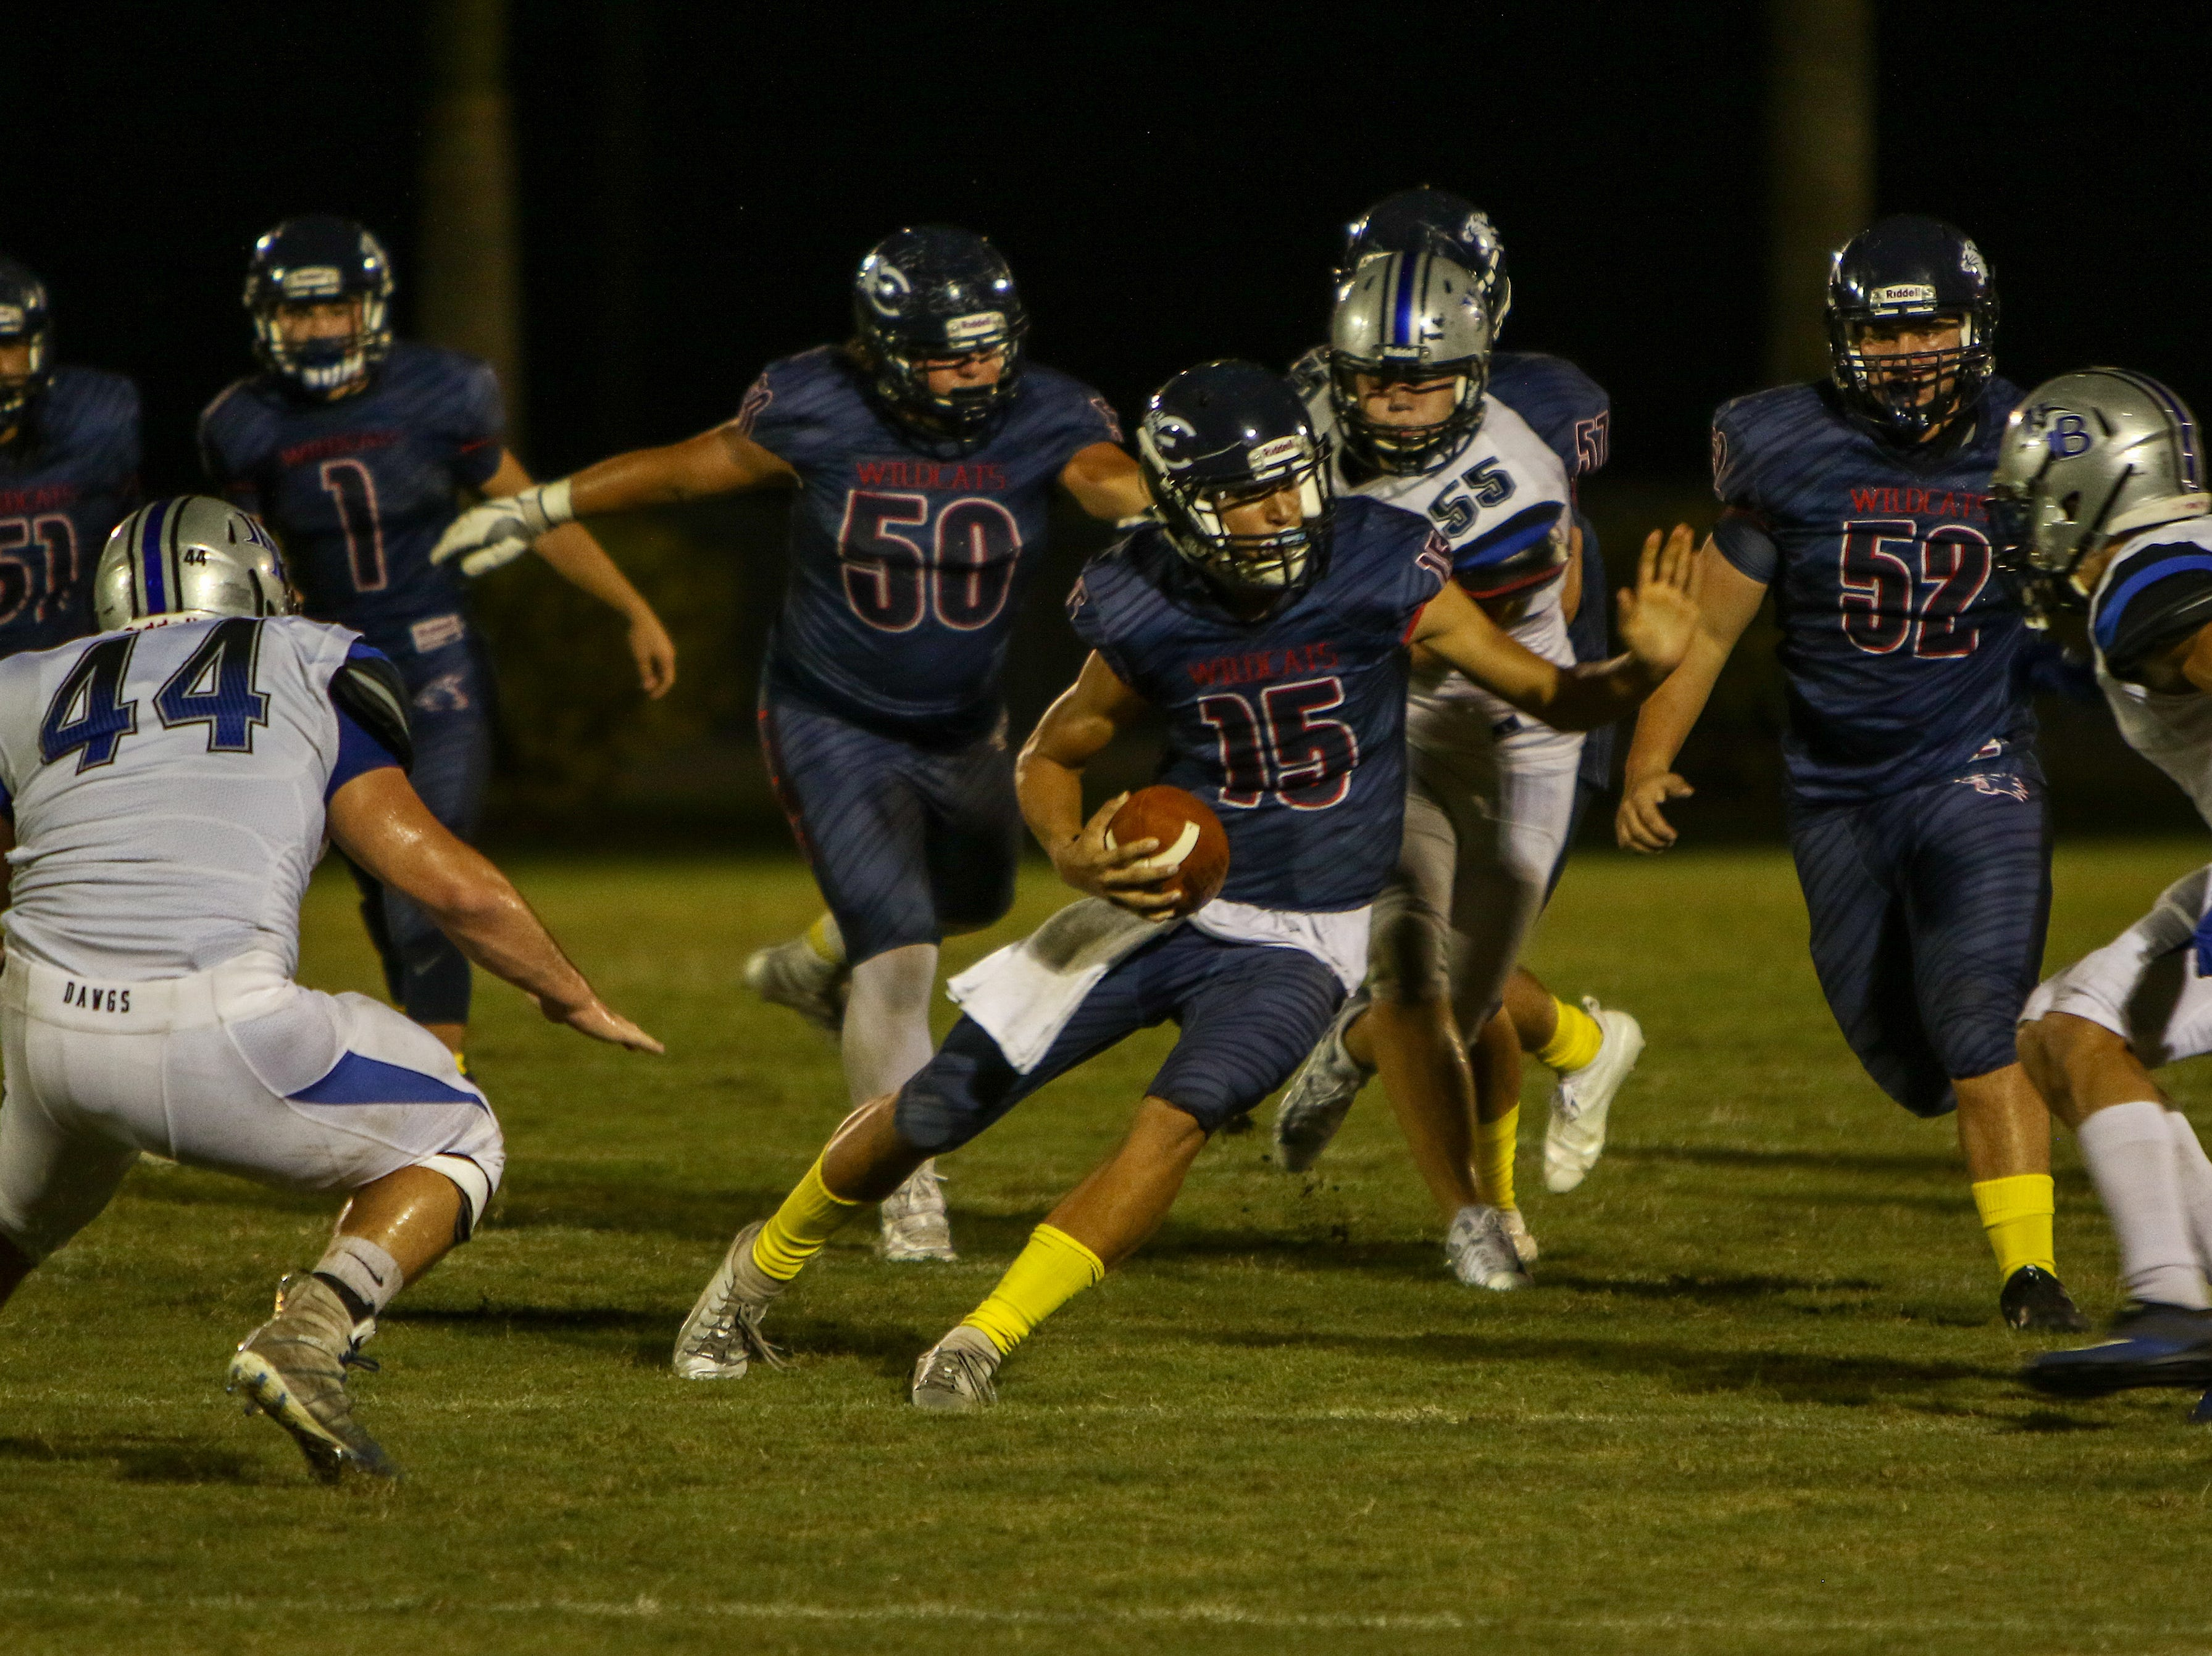 Estero hosted Ida Baker in a high school football game and won 23-13 on Friday night.